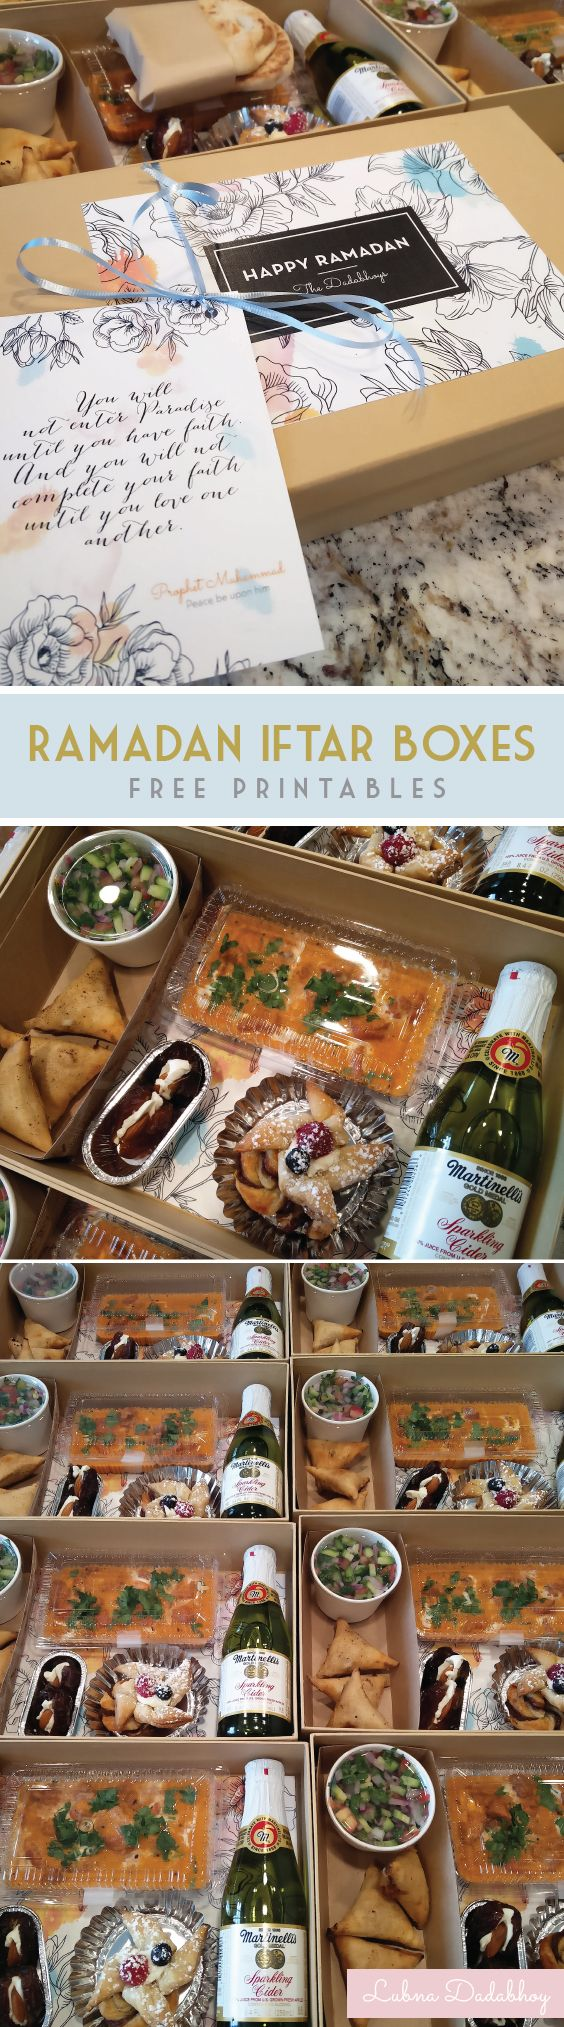 These are the 2016 Iftar boxes we made for our neighbors! We included three stationery pieces; a hadith of Prophet Muhammad (pbuh), a little note from our family explaining Ramadan, and an iftar menu card. You can download the editable and printable files here: https://drive.google.com/file/d/0B0dSz98G3ApJTk1ZOVRxNkx6ZG8/view Please re-pin and share!